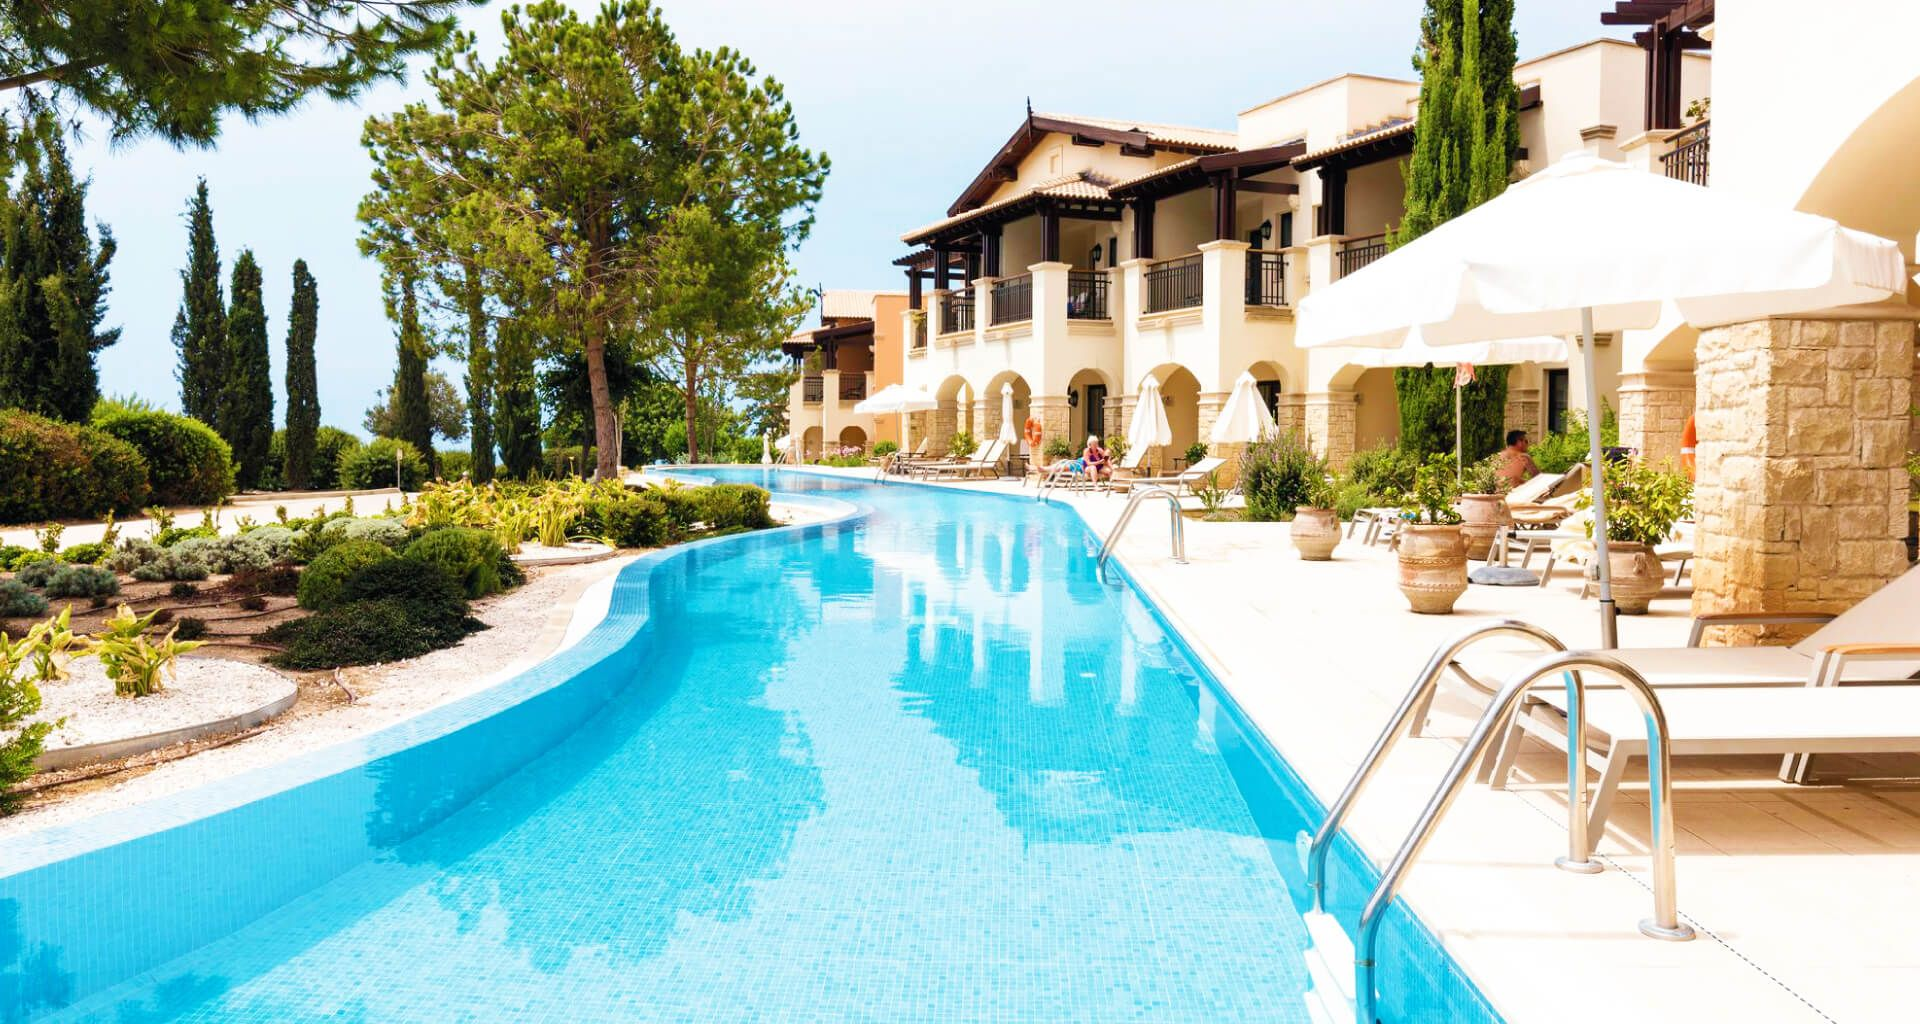 A guide to the best hotels in Paphos